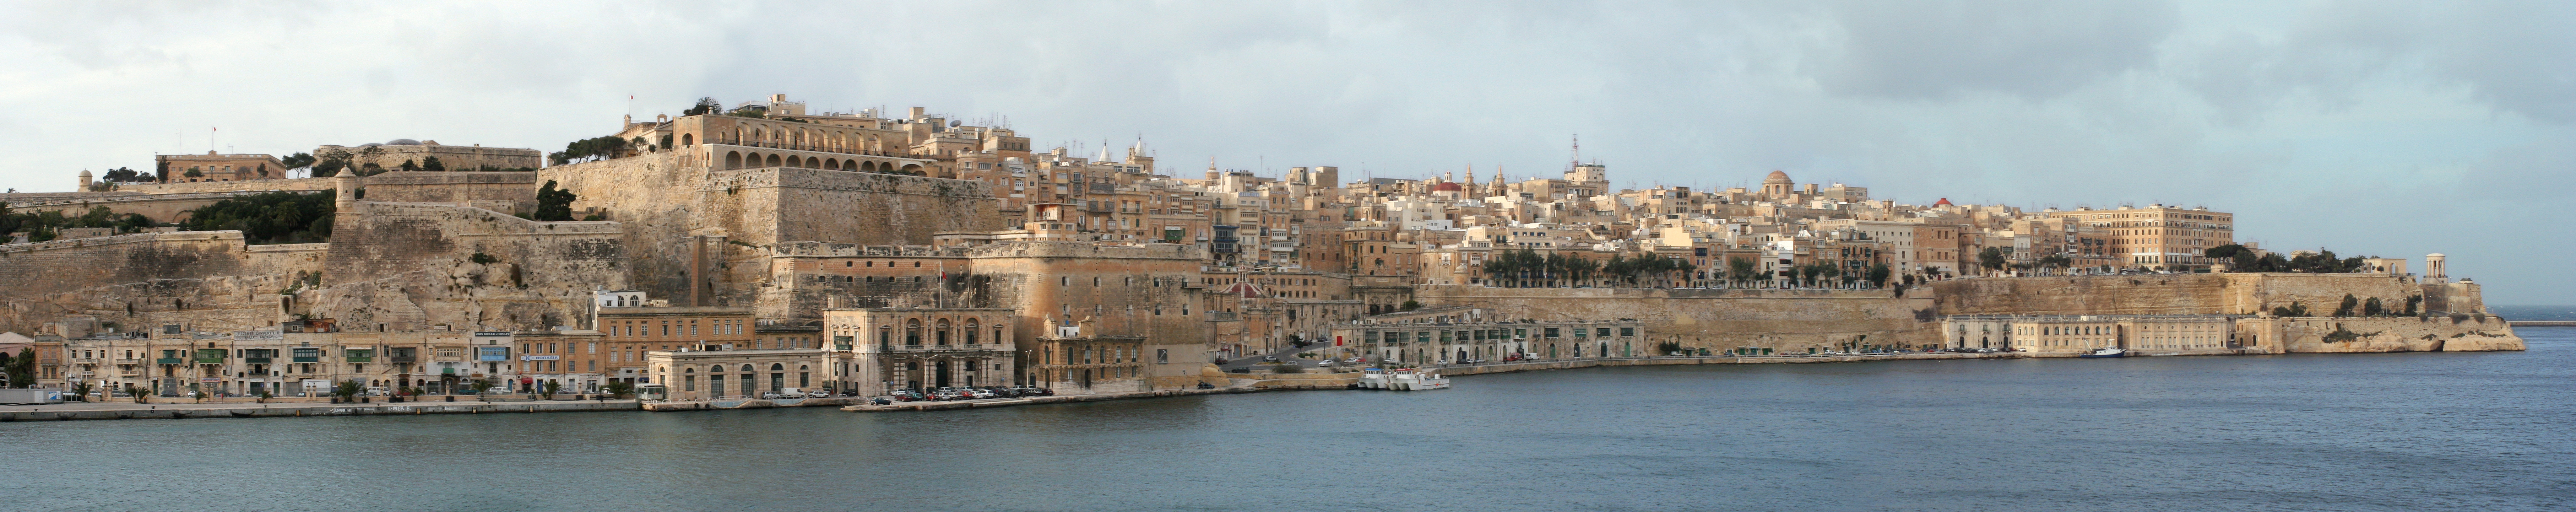 A panoramic view of Valletta, the capital of Malta, as seen from Senglea across the Grand Harbour. The city is named after Jean Parisot de la Valette, Grandmaster of the Knights Hospitaller who successfully defended the island from an Ottoman invasion in 1565. The City of Valletta was officially recognised as a World Heritage Site by UNESCO in 1980.